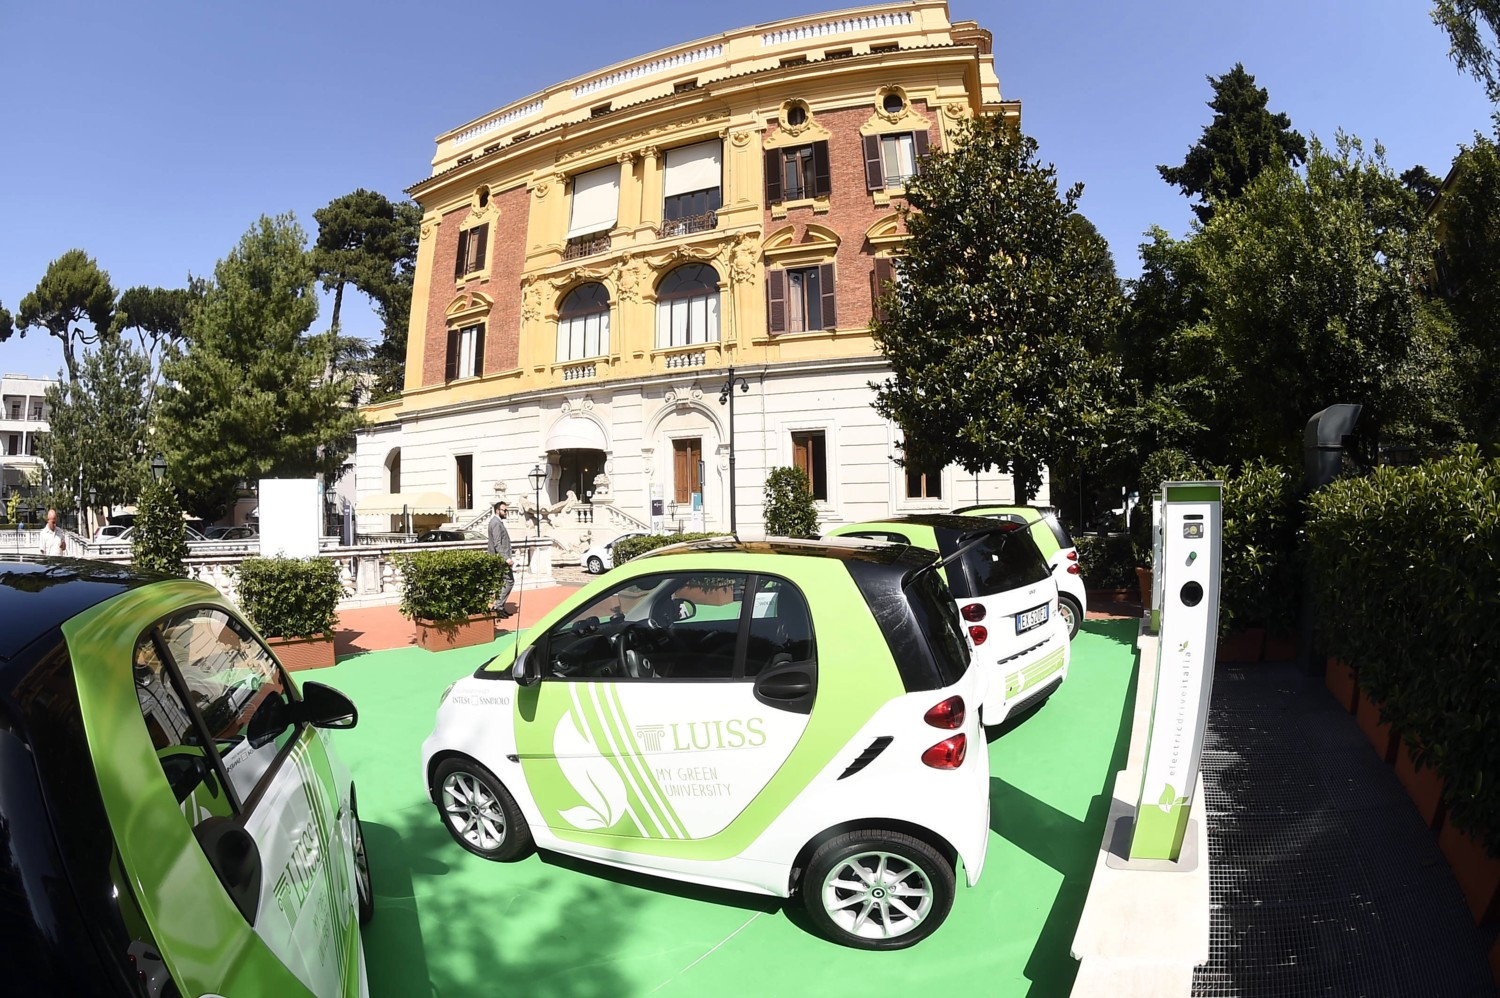 Luiss Green Mobility